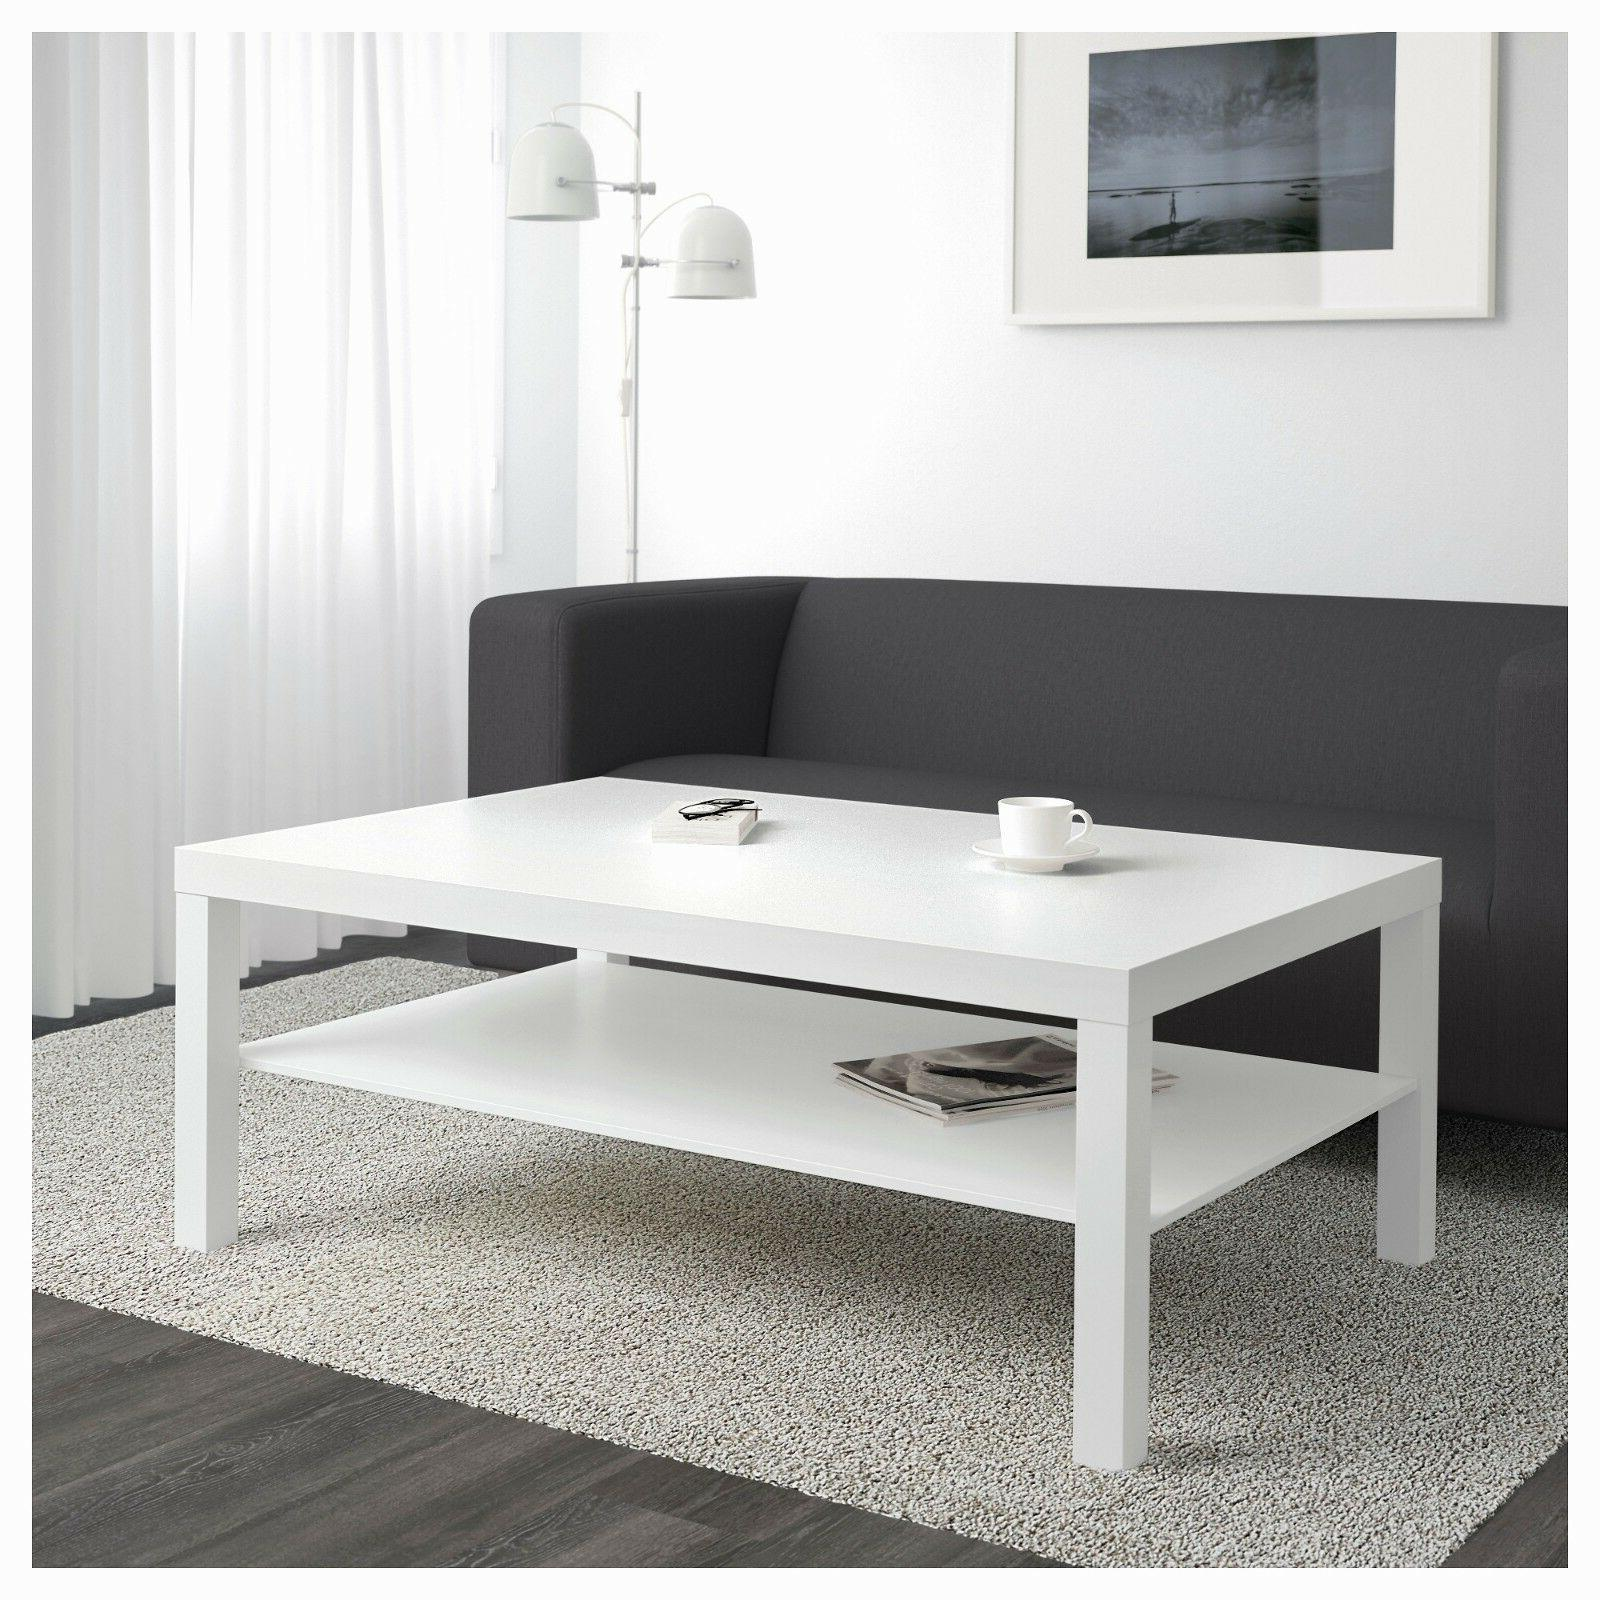 New Modern Coffee Table Lack White TV Stand Laptop IKEA Livi